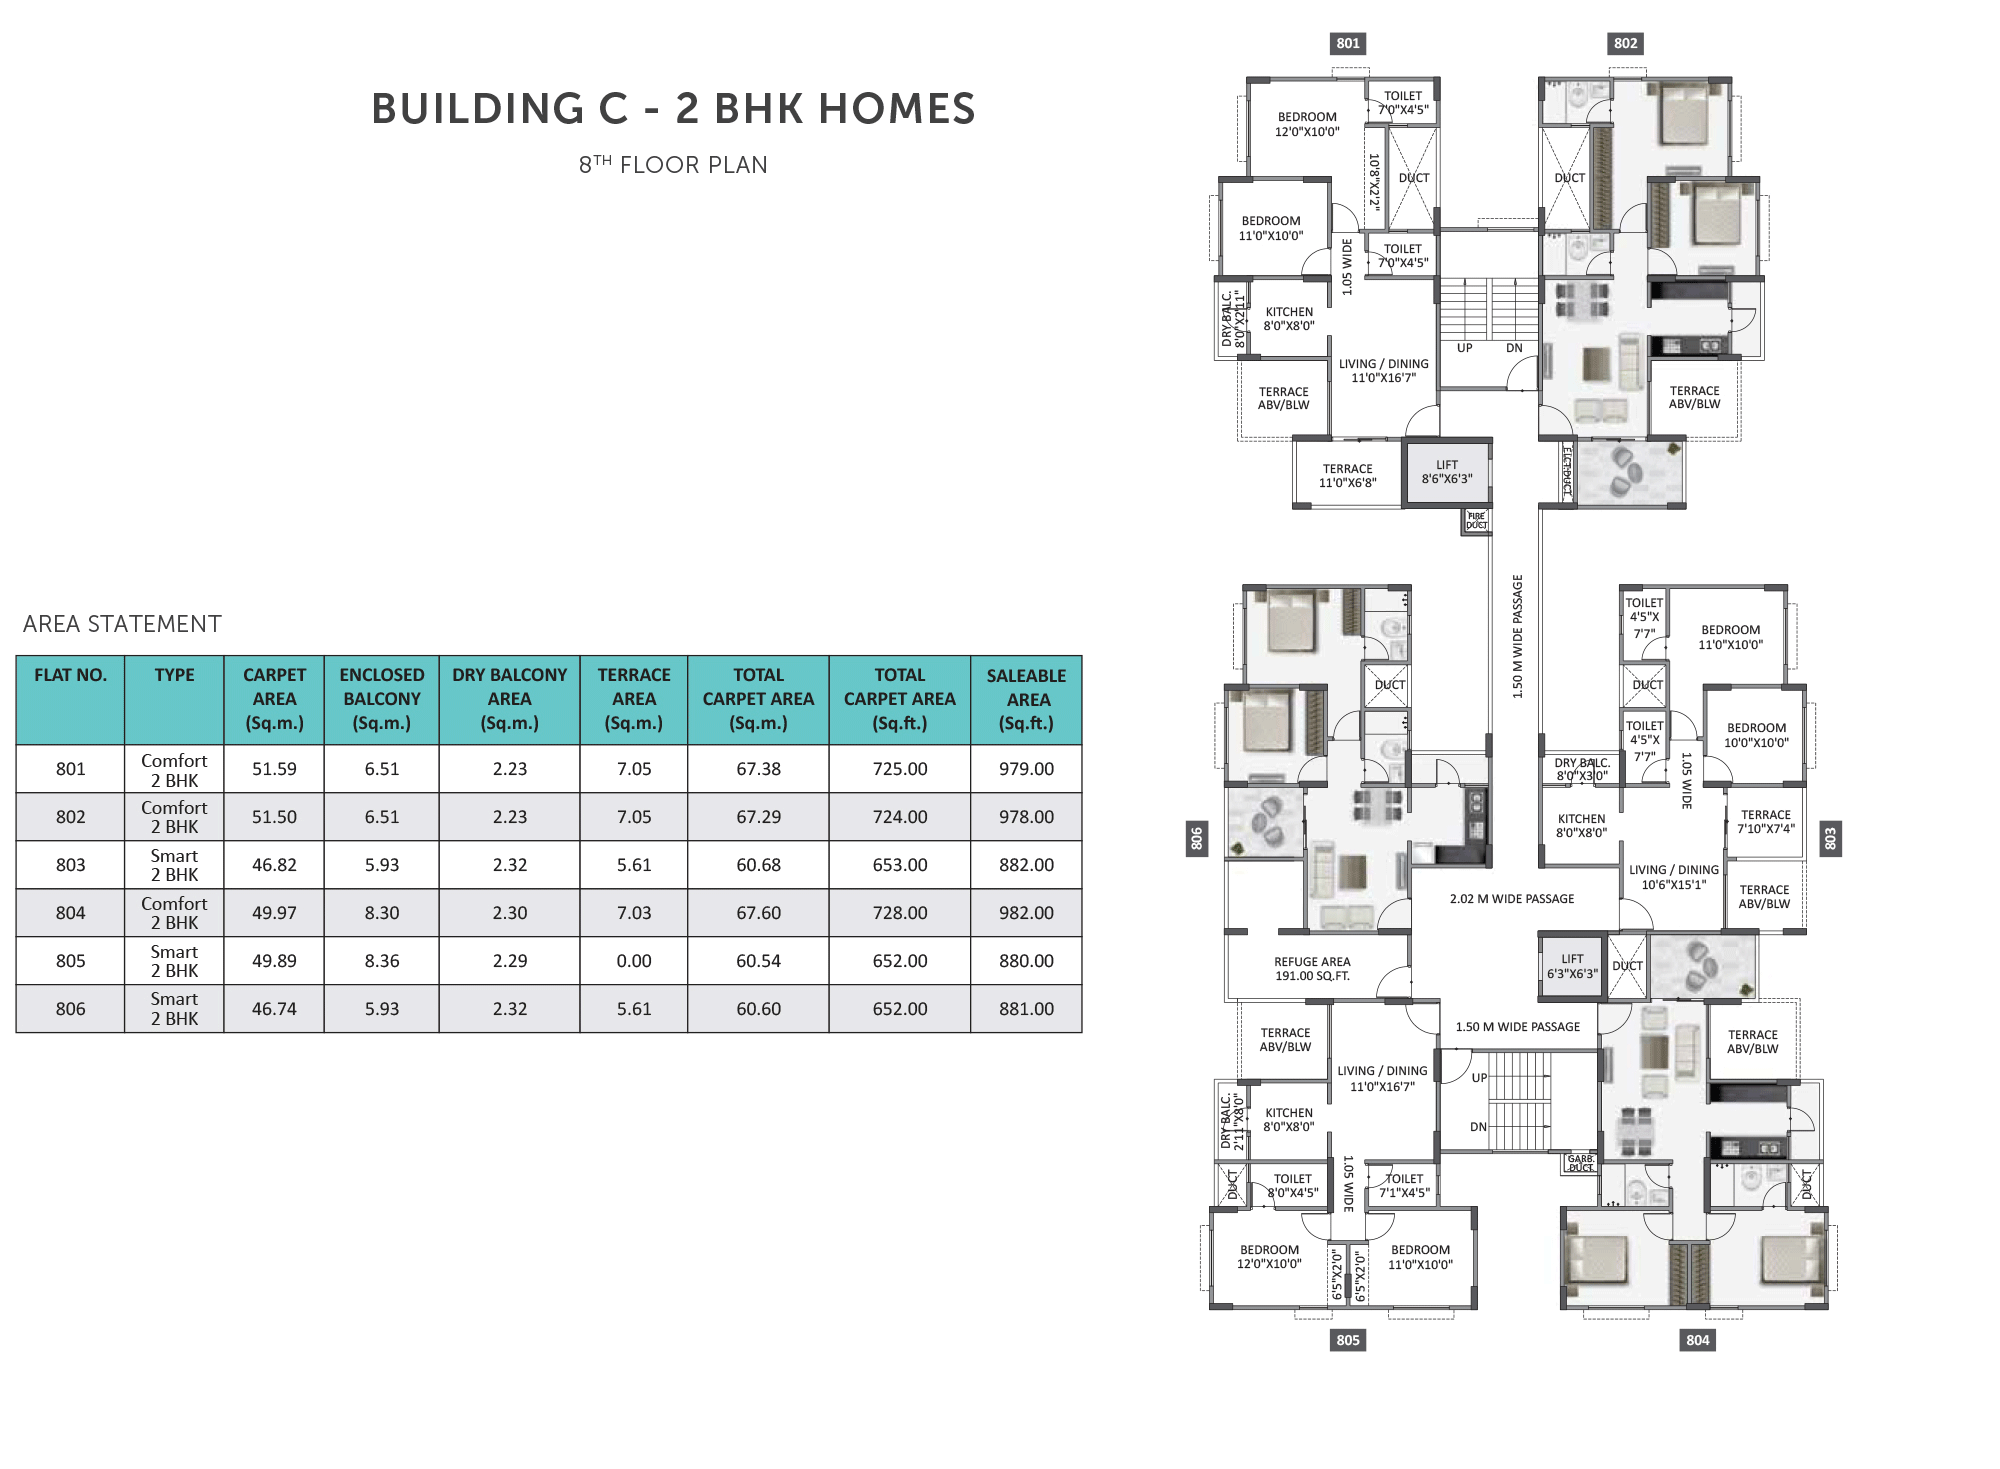 Equilife Homes_Building  C 2BHK 8 FLOOR PLAN